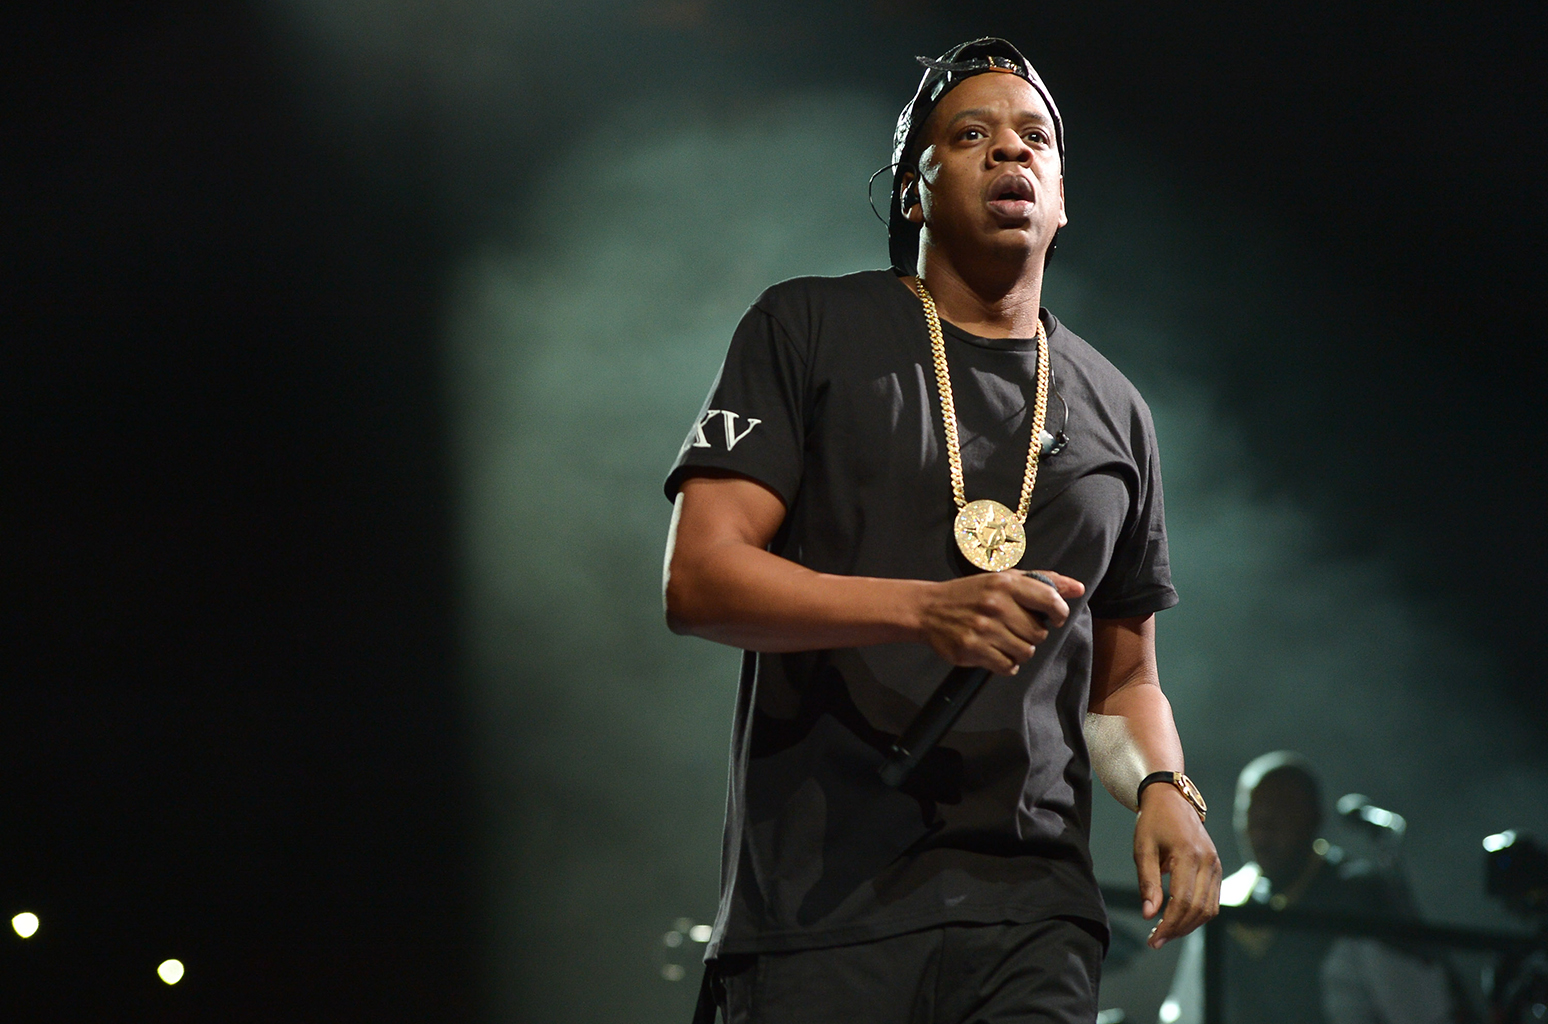 '4:44' Is Actually Jay Z's Upcoming Album [Watch] jay z 2014 billboard 1548